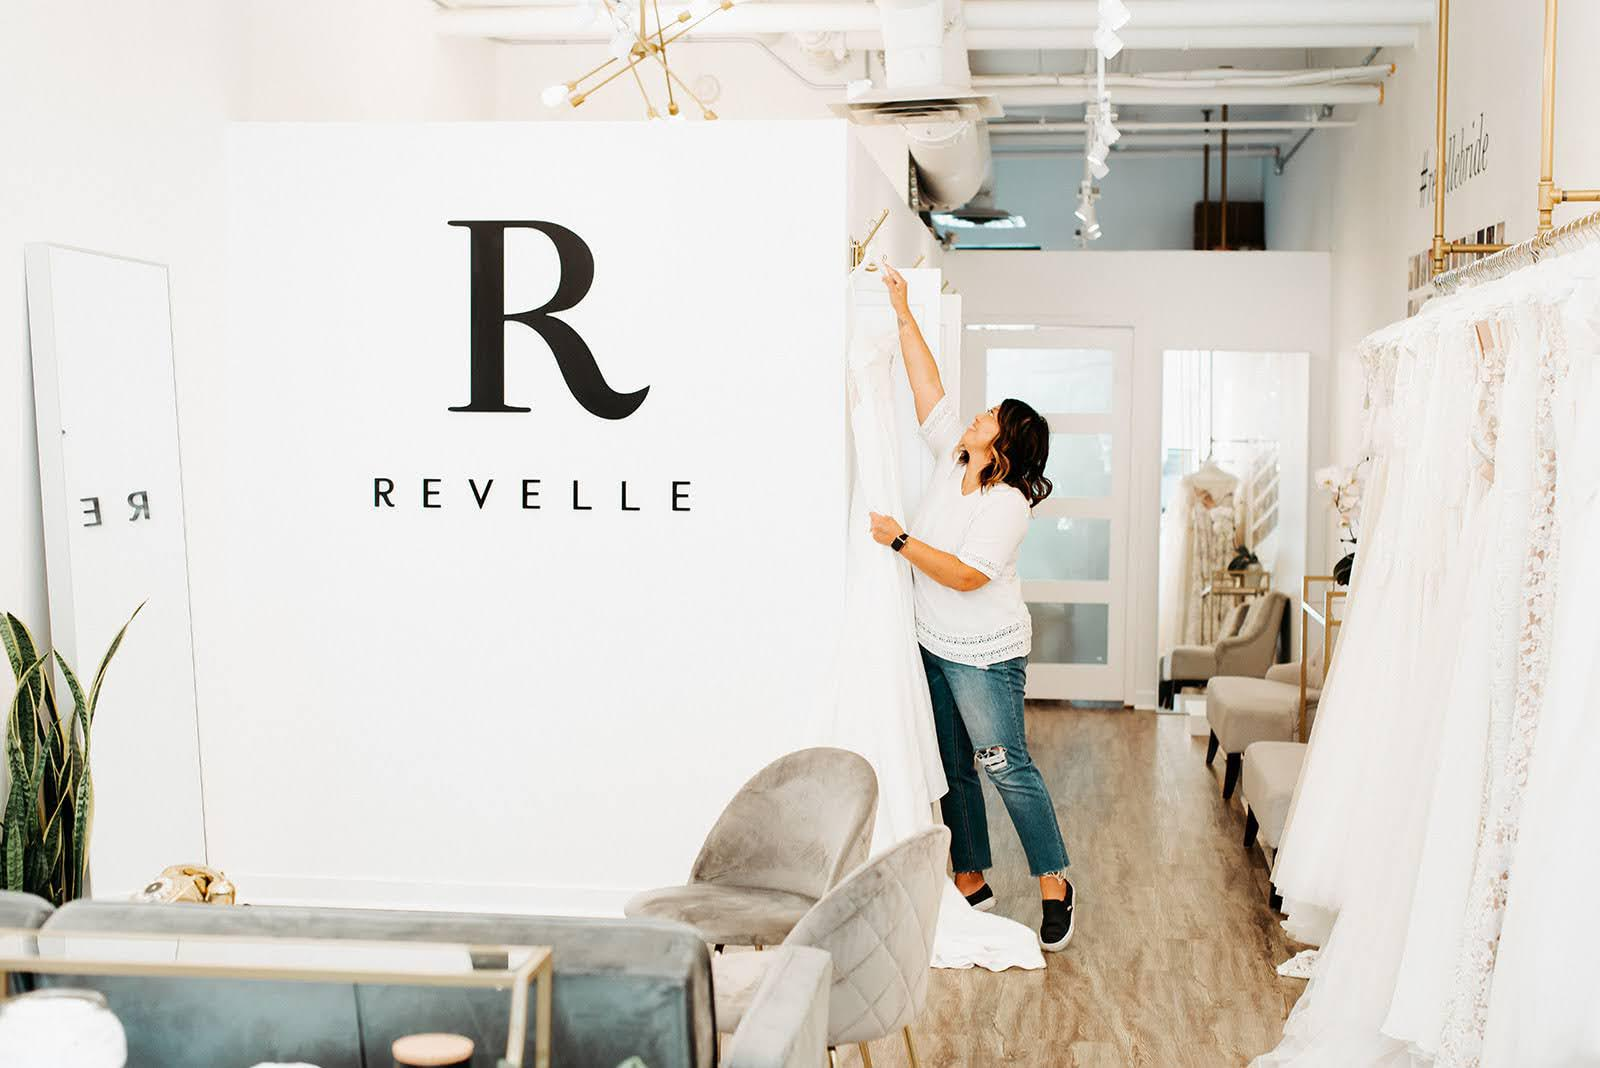 Revelle Bridal - Earleen Adjusting Dress - Photo Credit Laura Kelly Photography